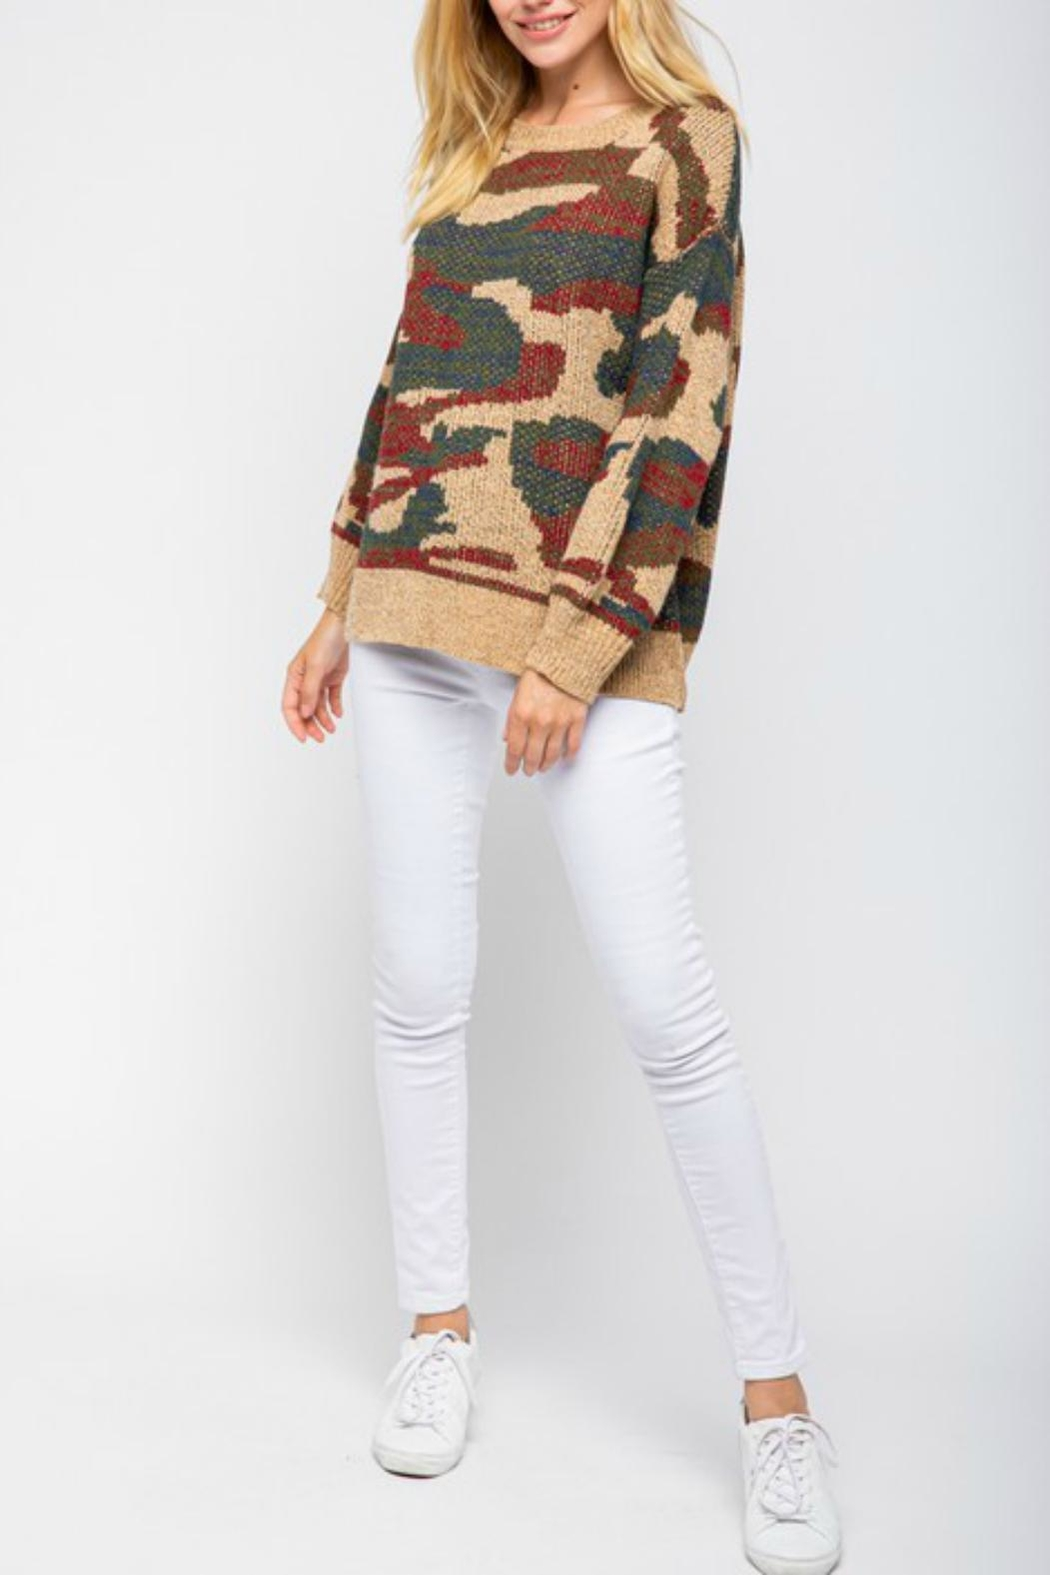 Pretty Little Things Camel Camo Sweater - Front Full Image